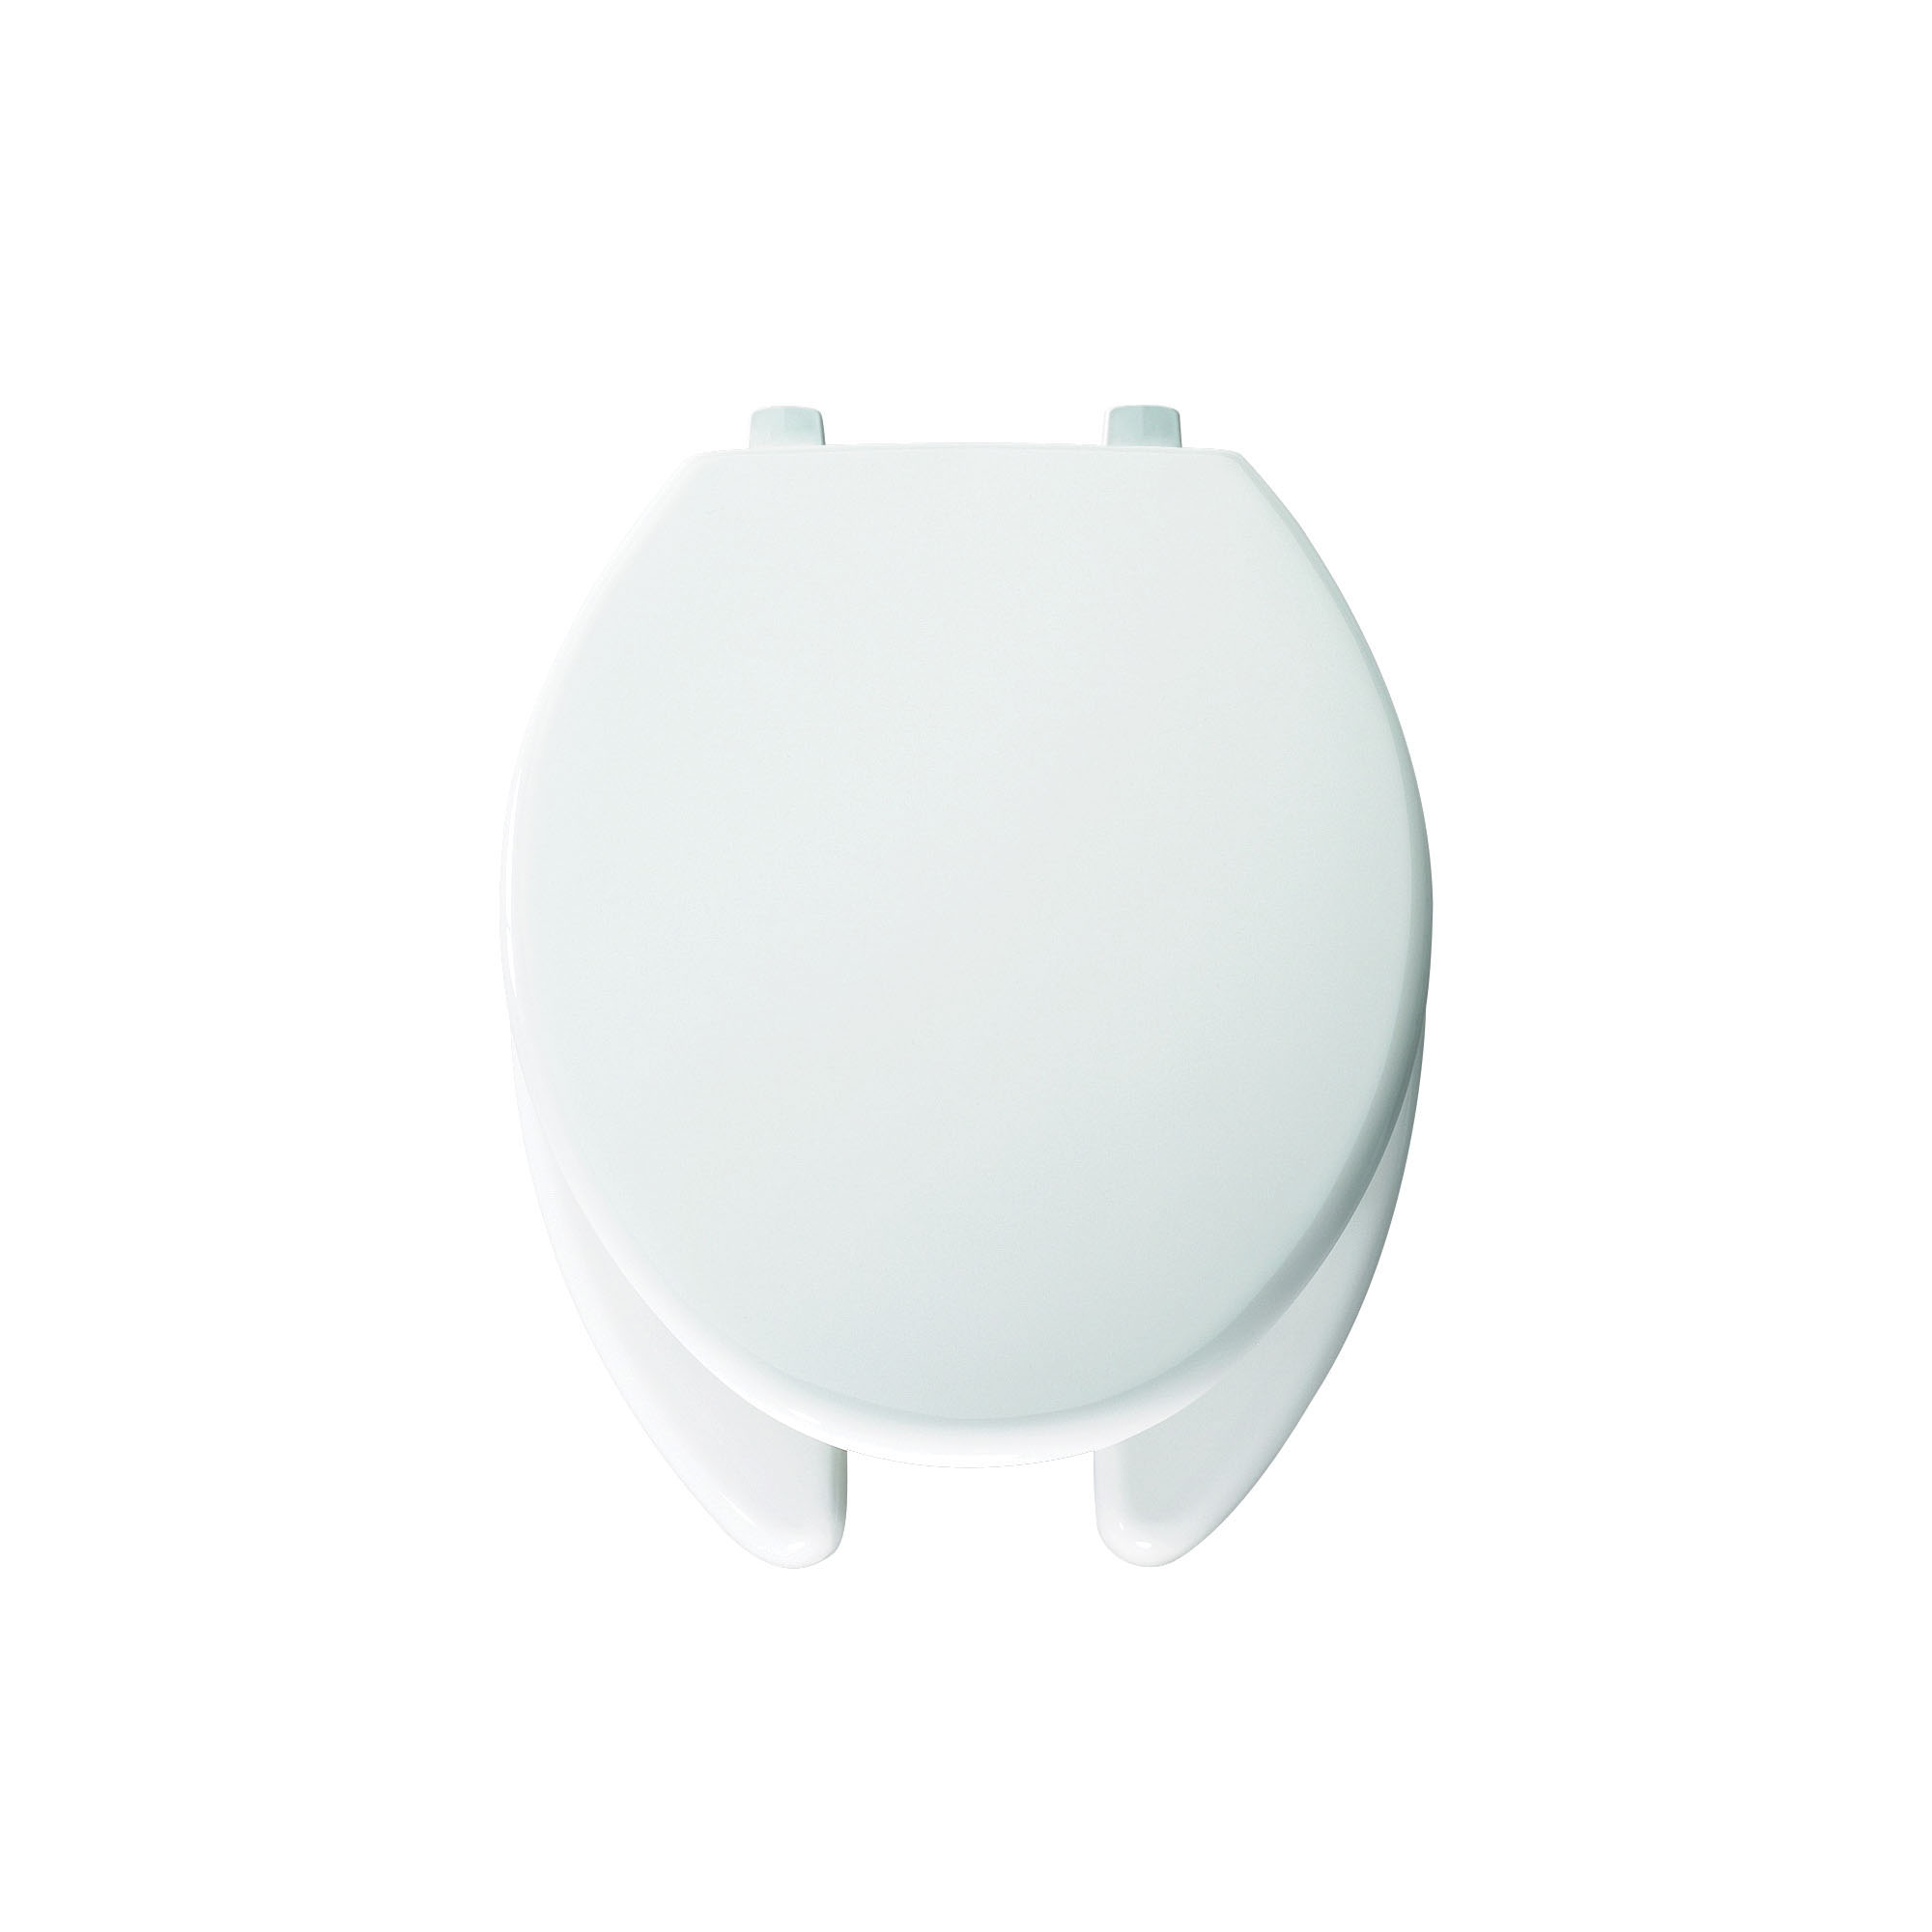 Bemis® 7850TDG 000 Toilet Seat With Cover, Elongated Bowl, Open Front, Plastic, White, Domestic